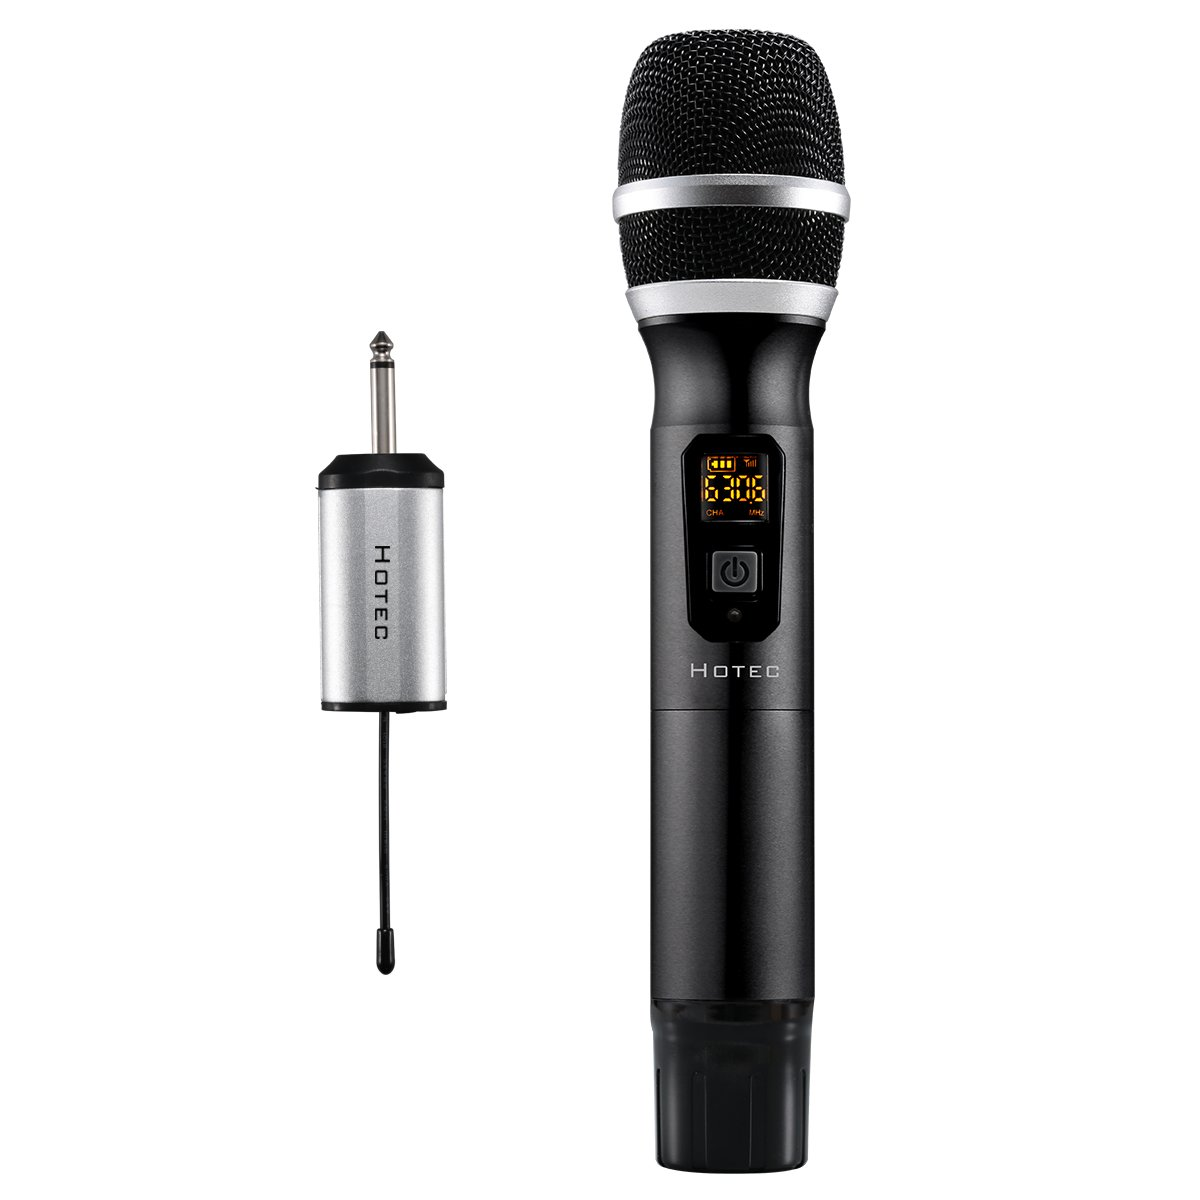 Hotec 25 Channel UHF Handheld Wireless Microphone with Mini Portable Receiver 1/4'' Output, For Church/Home / Karaoke/Business Meeting (Black)